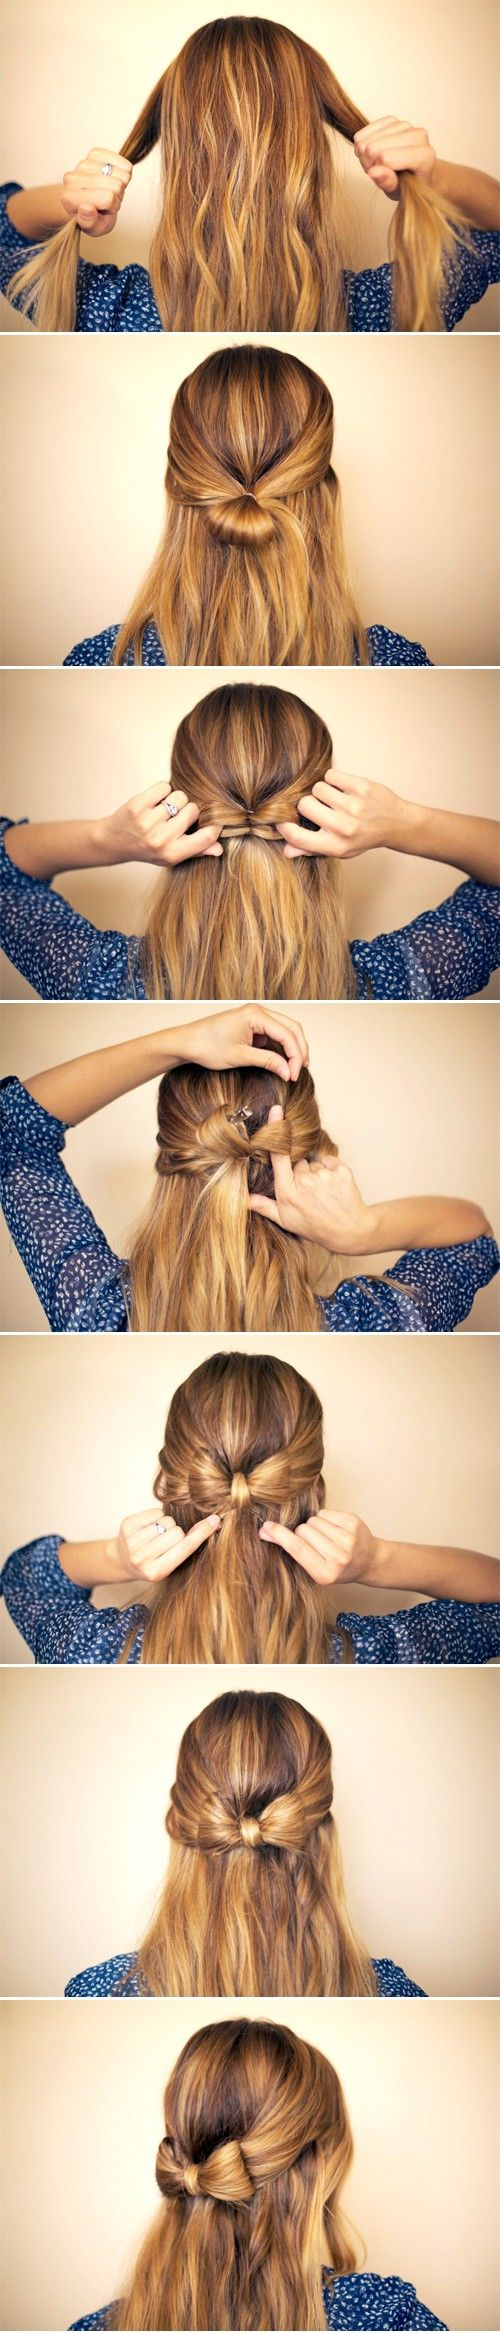 cute hairstyleHairbows, Bows Ties, Bows Tutorials, Hair Tutorial, Long Hair, Bows Hairstyles, Cute Hair, Hair Bows, Hair Style